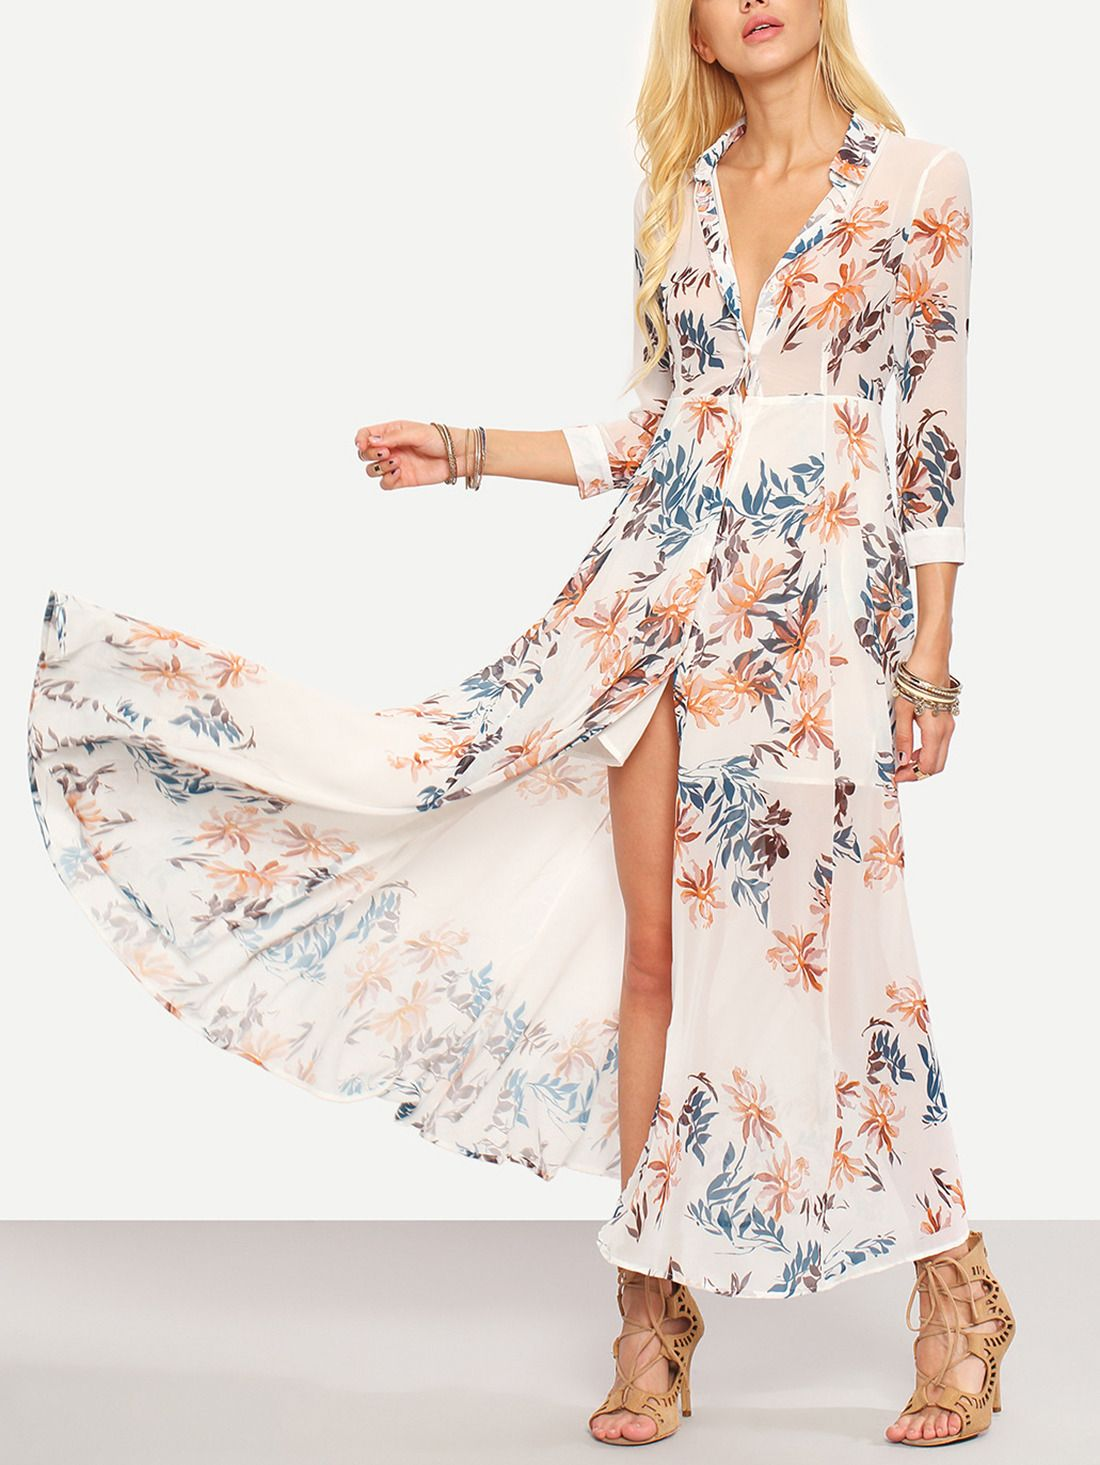 352f3e0aaa8 Shop Flower Print Chiffon Long Shirt Dress - White online. SheIn offers Flower  Print Chiffon Long Shirt Dress - White   more to fit your fashionable needs.